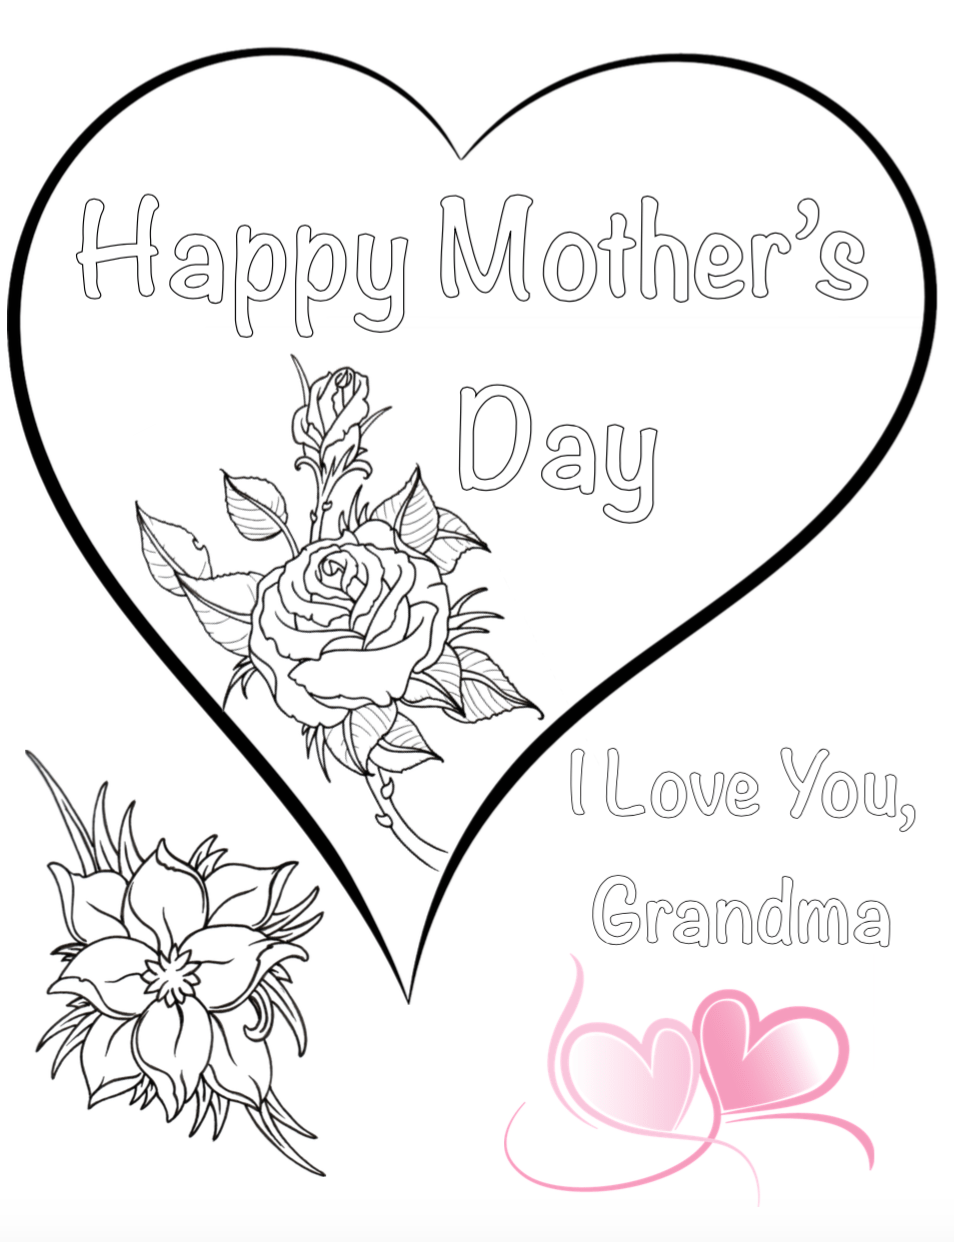 Free printable coloring pages mothers day - Free Printable Coloring Pages For Mother S Day Also Has A Coloring Sheet For Kids To